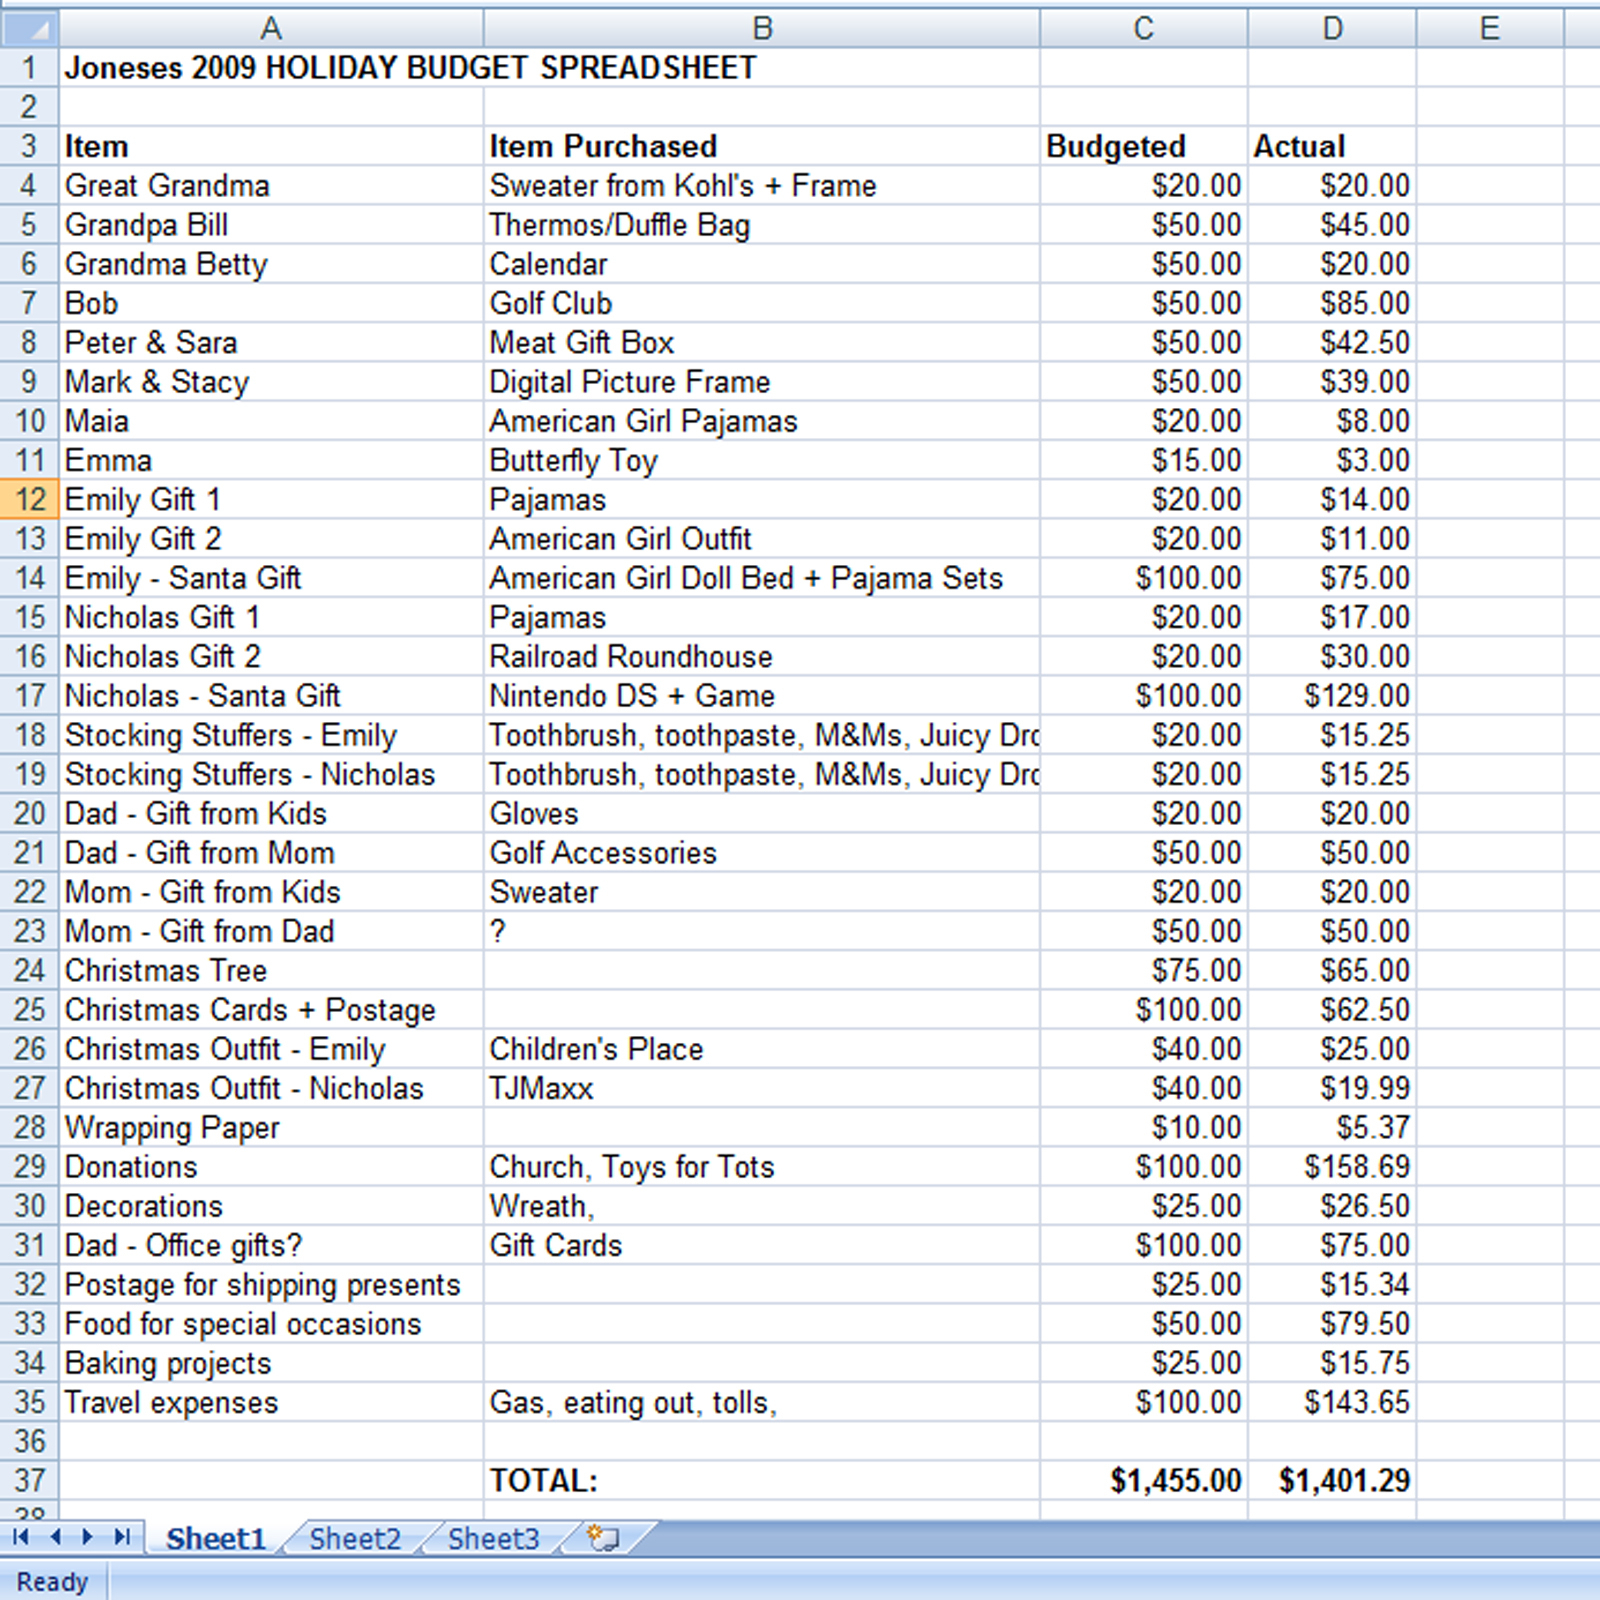 Christmas Present Spreadsheet Inside Create A Holiday Gift Expense Spreadsheet  Mommysavers